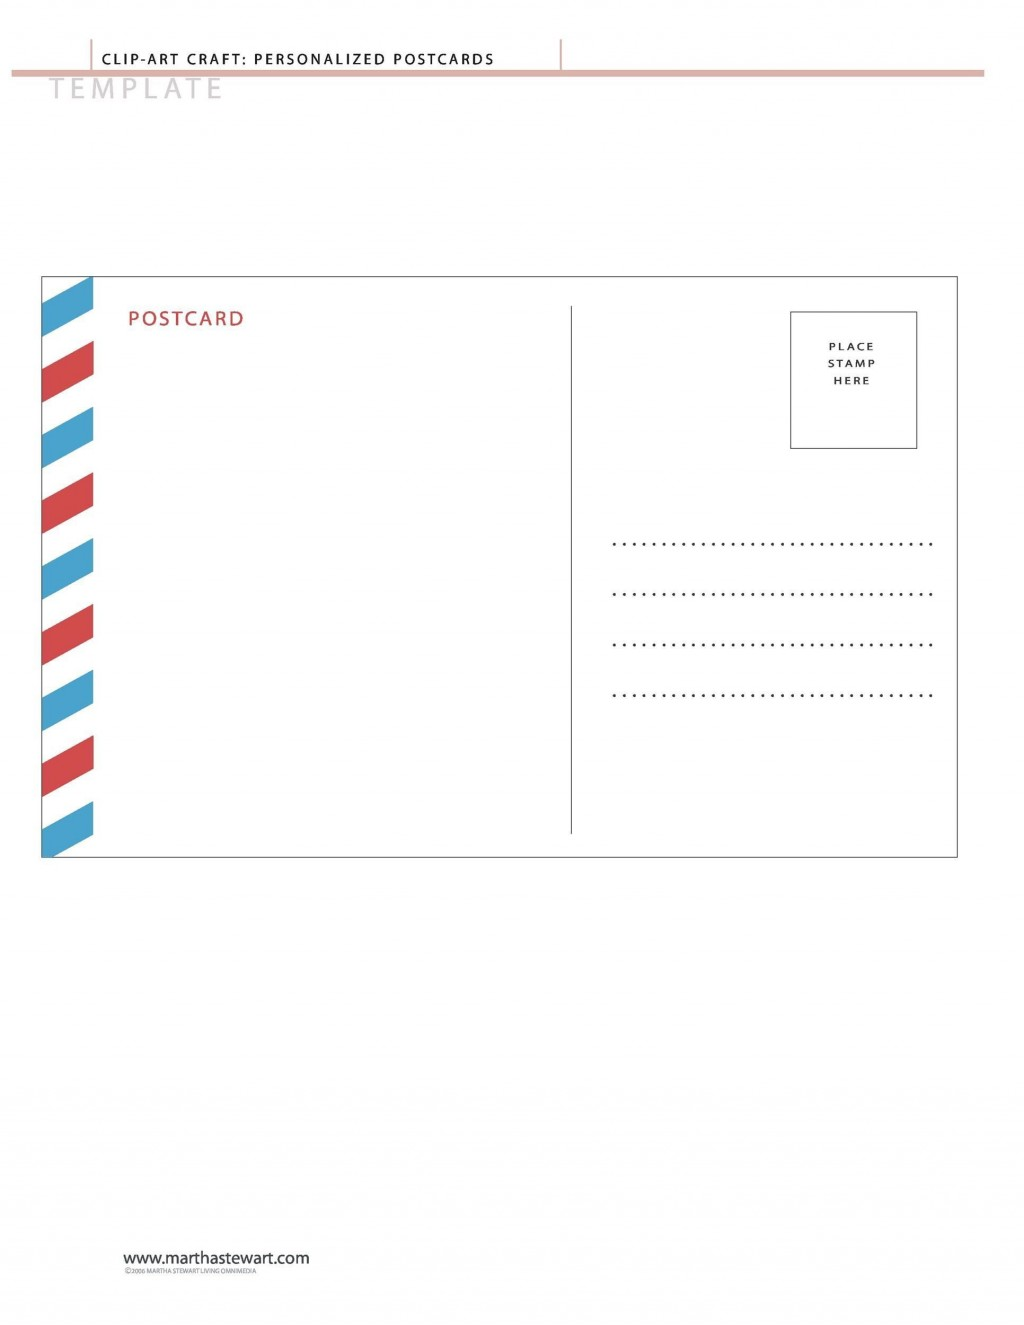 004 Marvelou Free Postcard Template Download Microsoft Word Concept Large